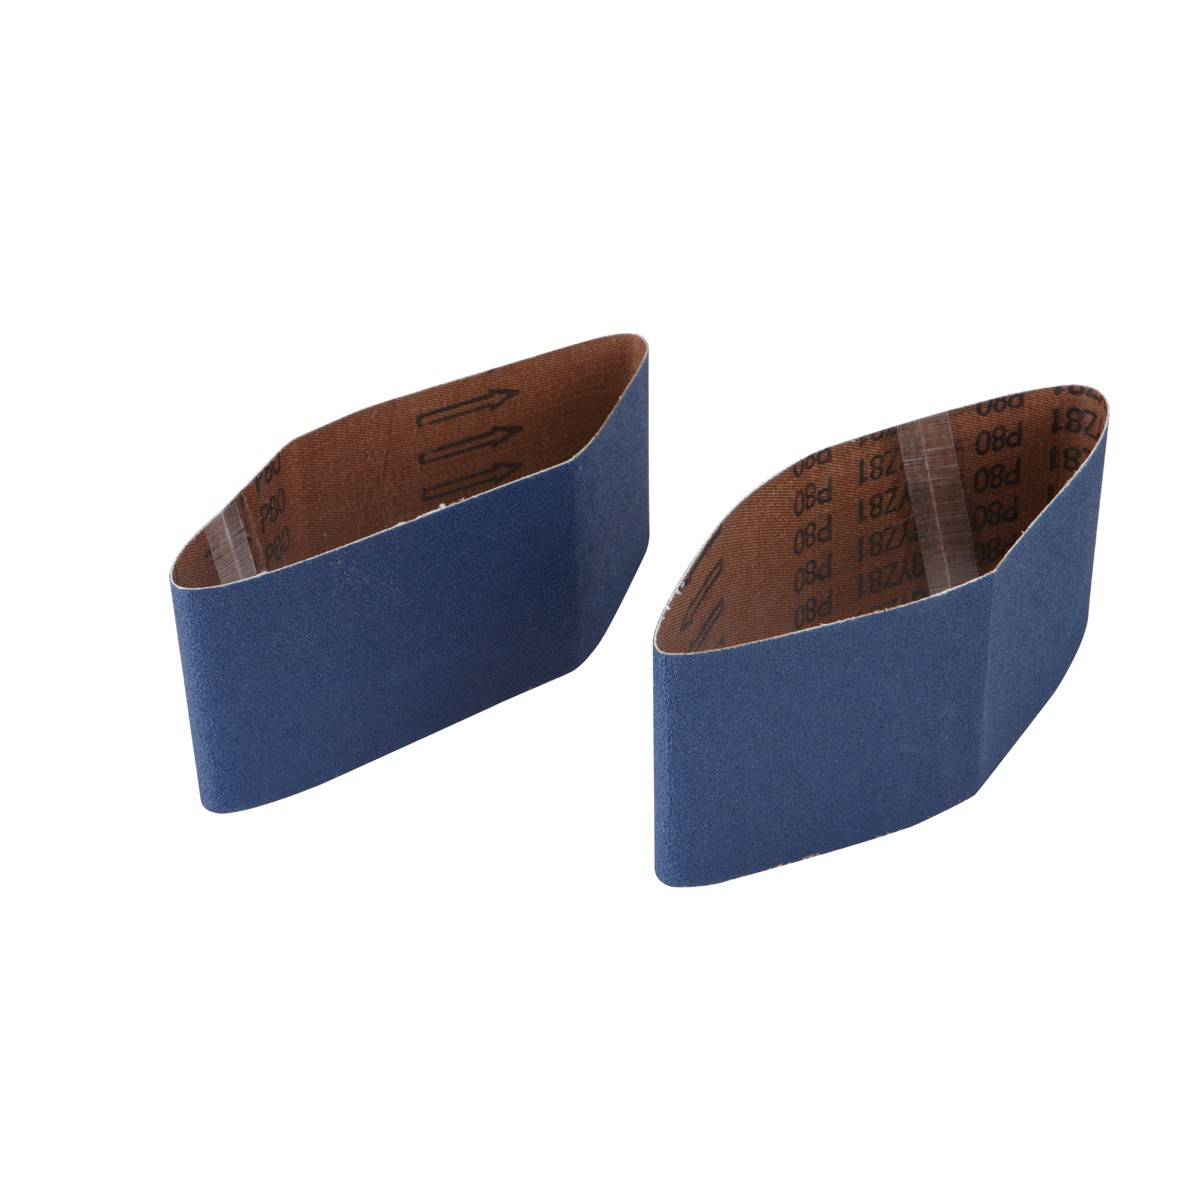 3 in. x 18 in. 80 Grit Zirc Sanding Belt 2 Pc